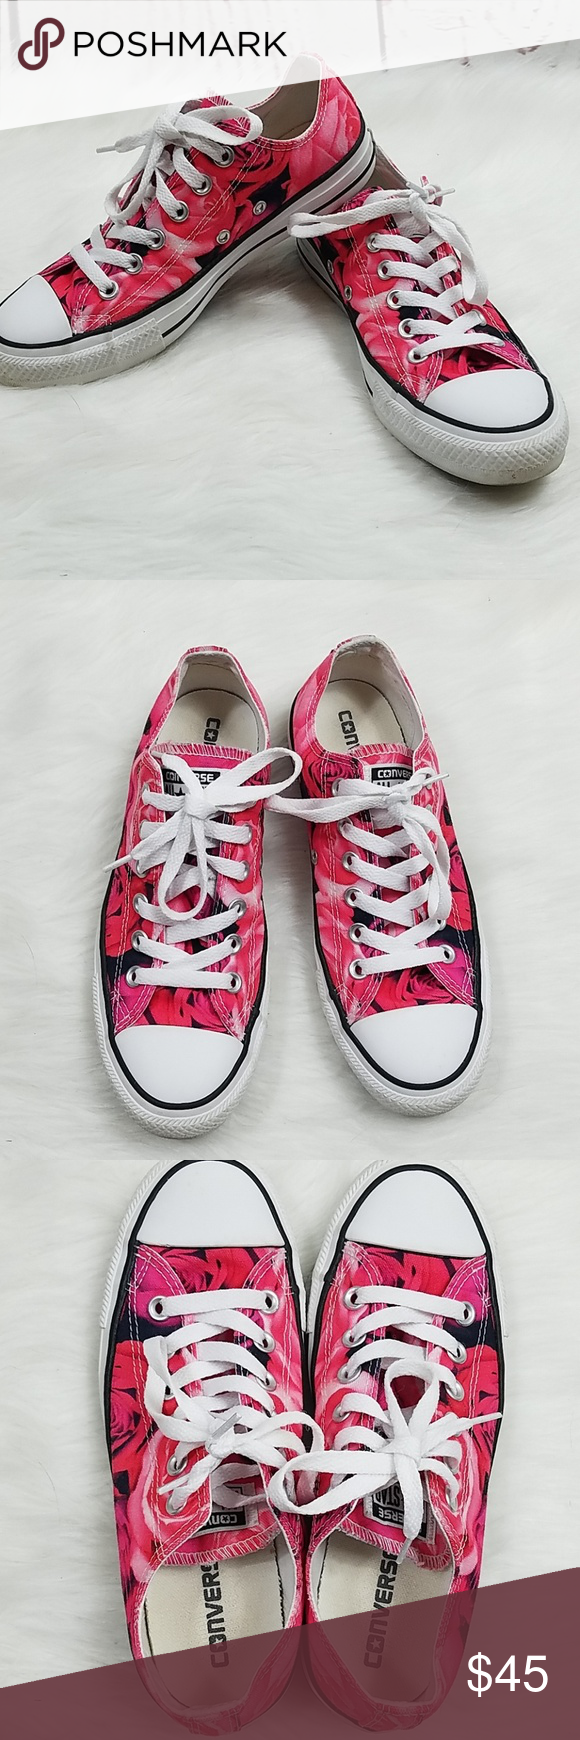 d5f7983d0f2 Converse Rose Pattern size 7 Like new. Rose pattern. Converse Shoes